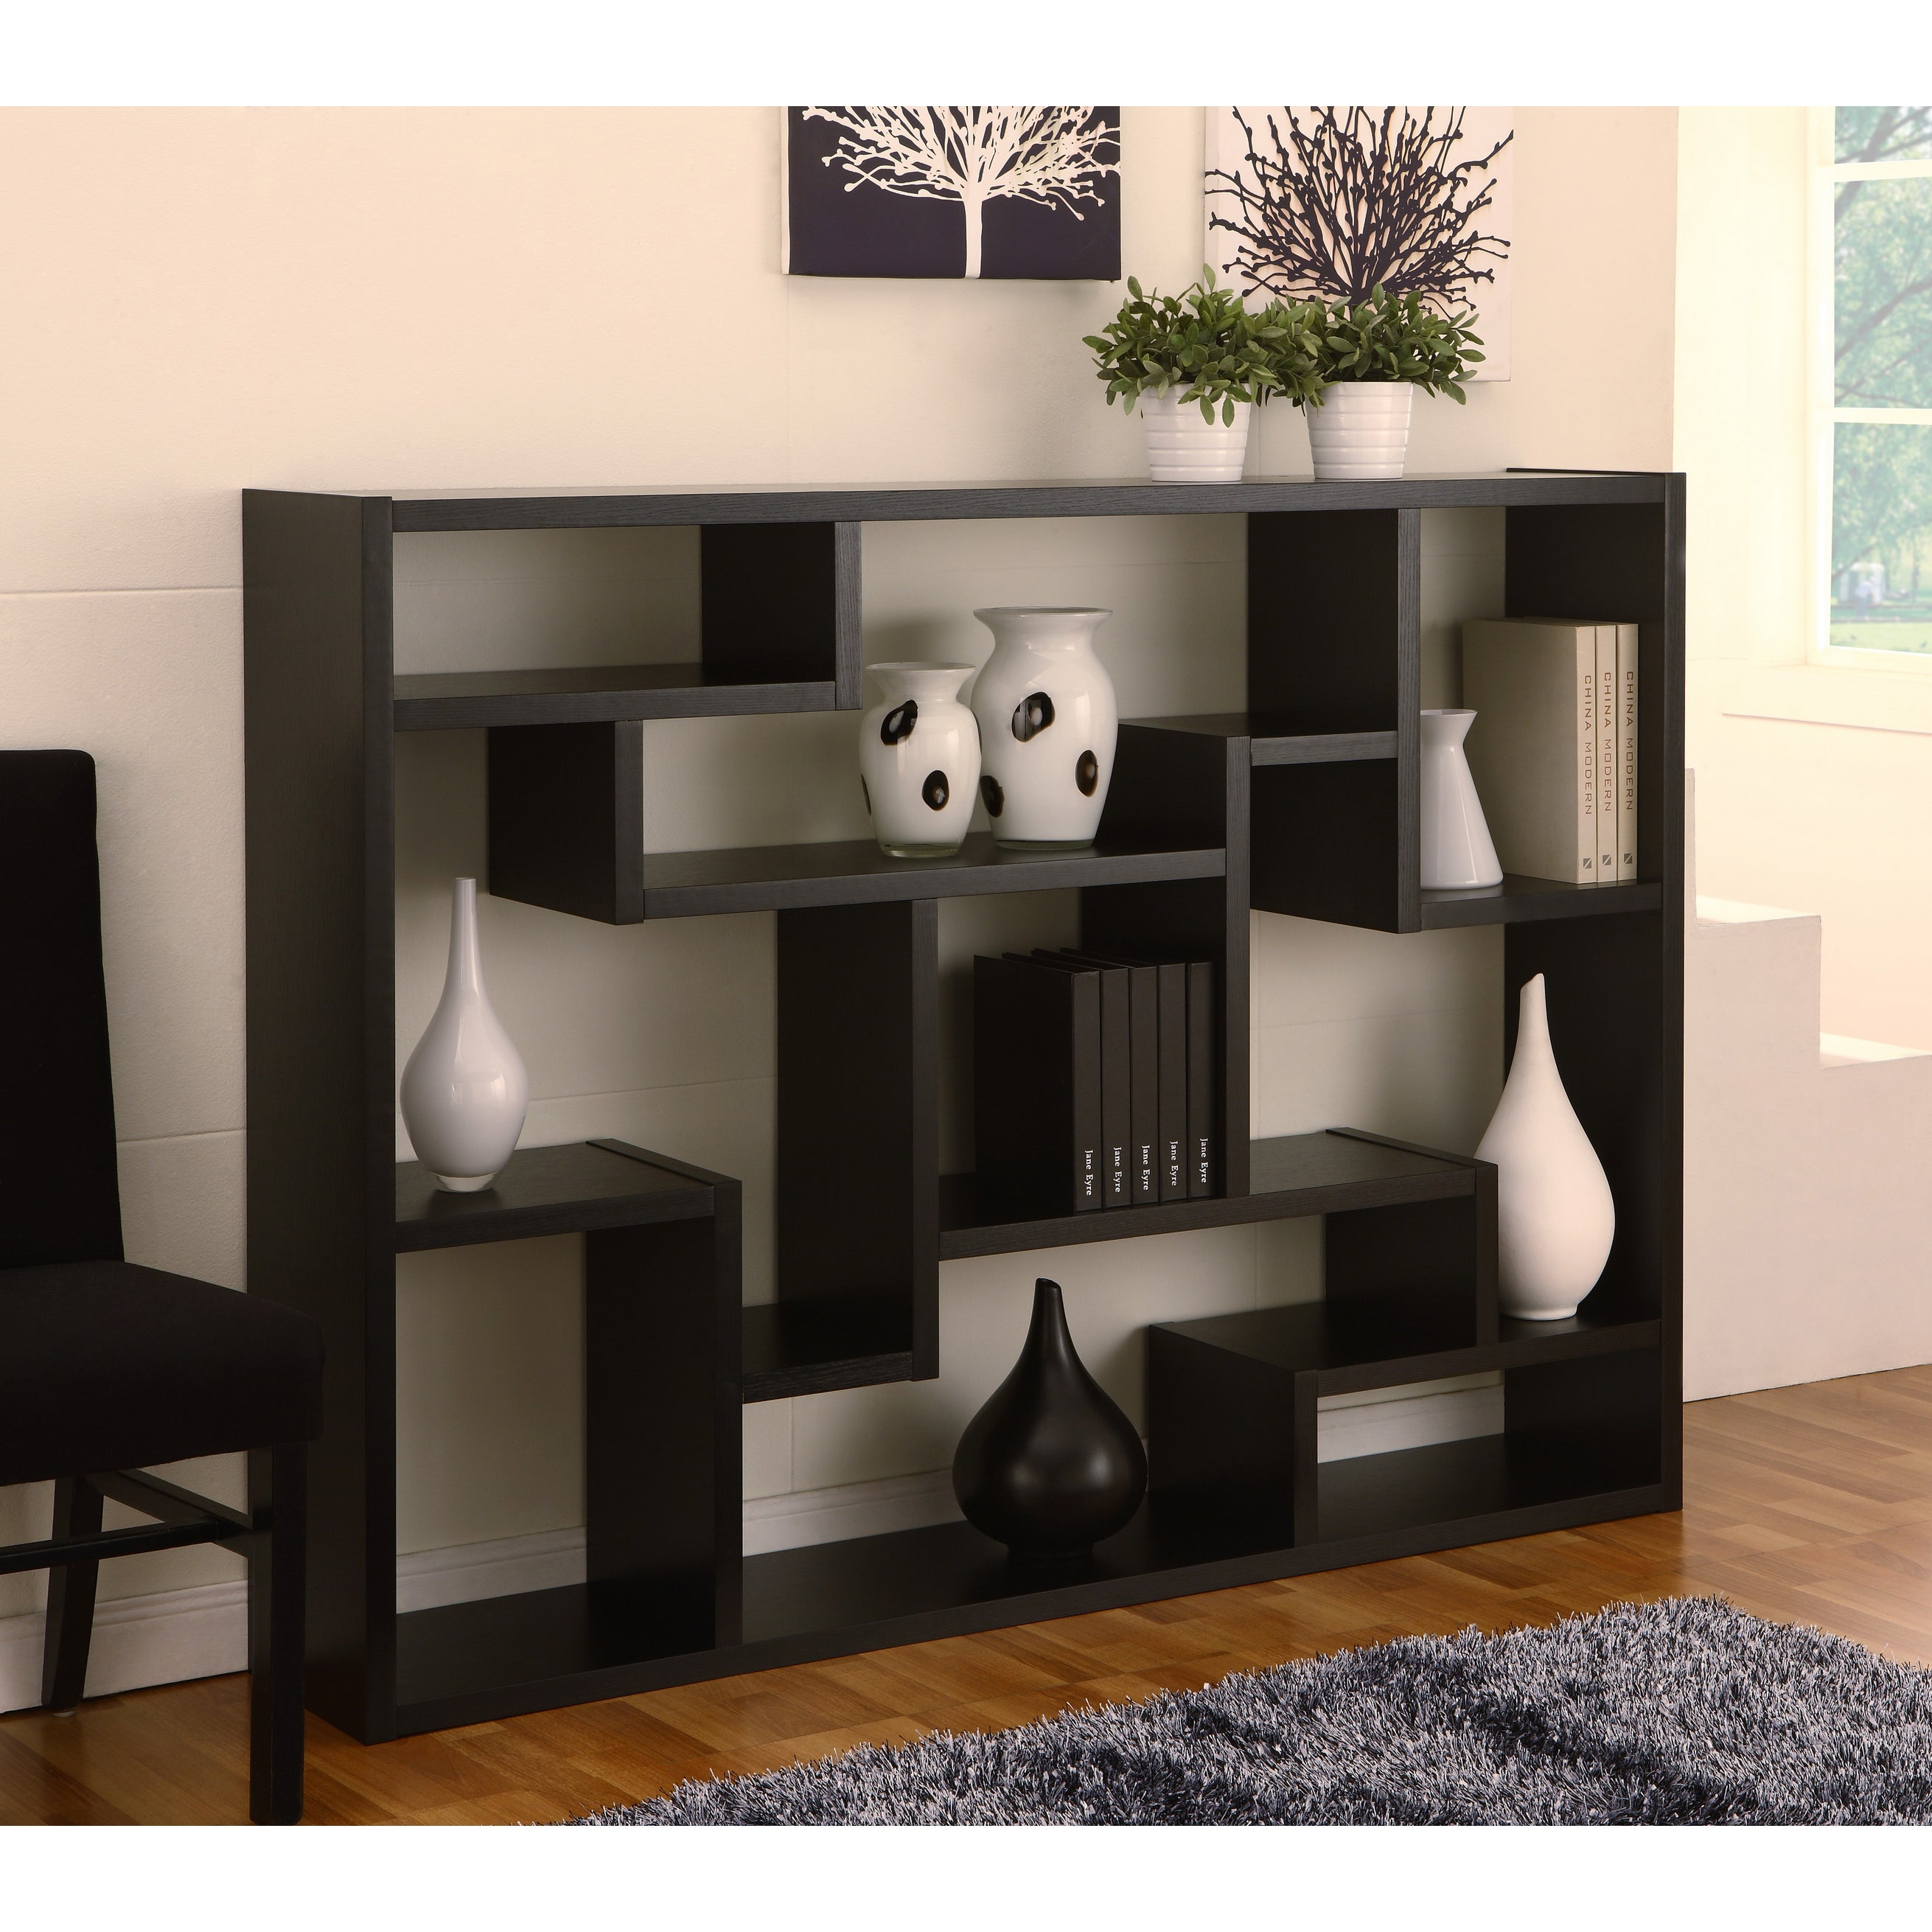 furniture engaging dazzling bookcase stupendous shelf shelves freestanding decorative bookshelf as divider table room dividers door ikea image full with for